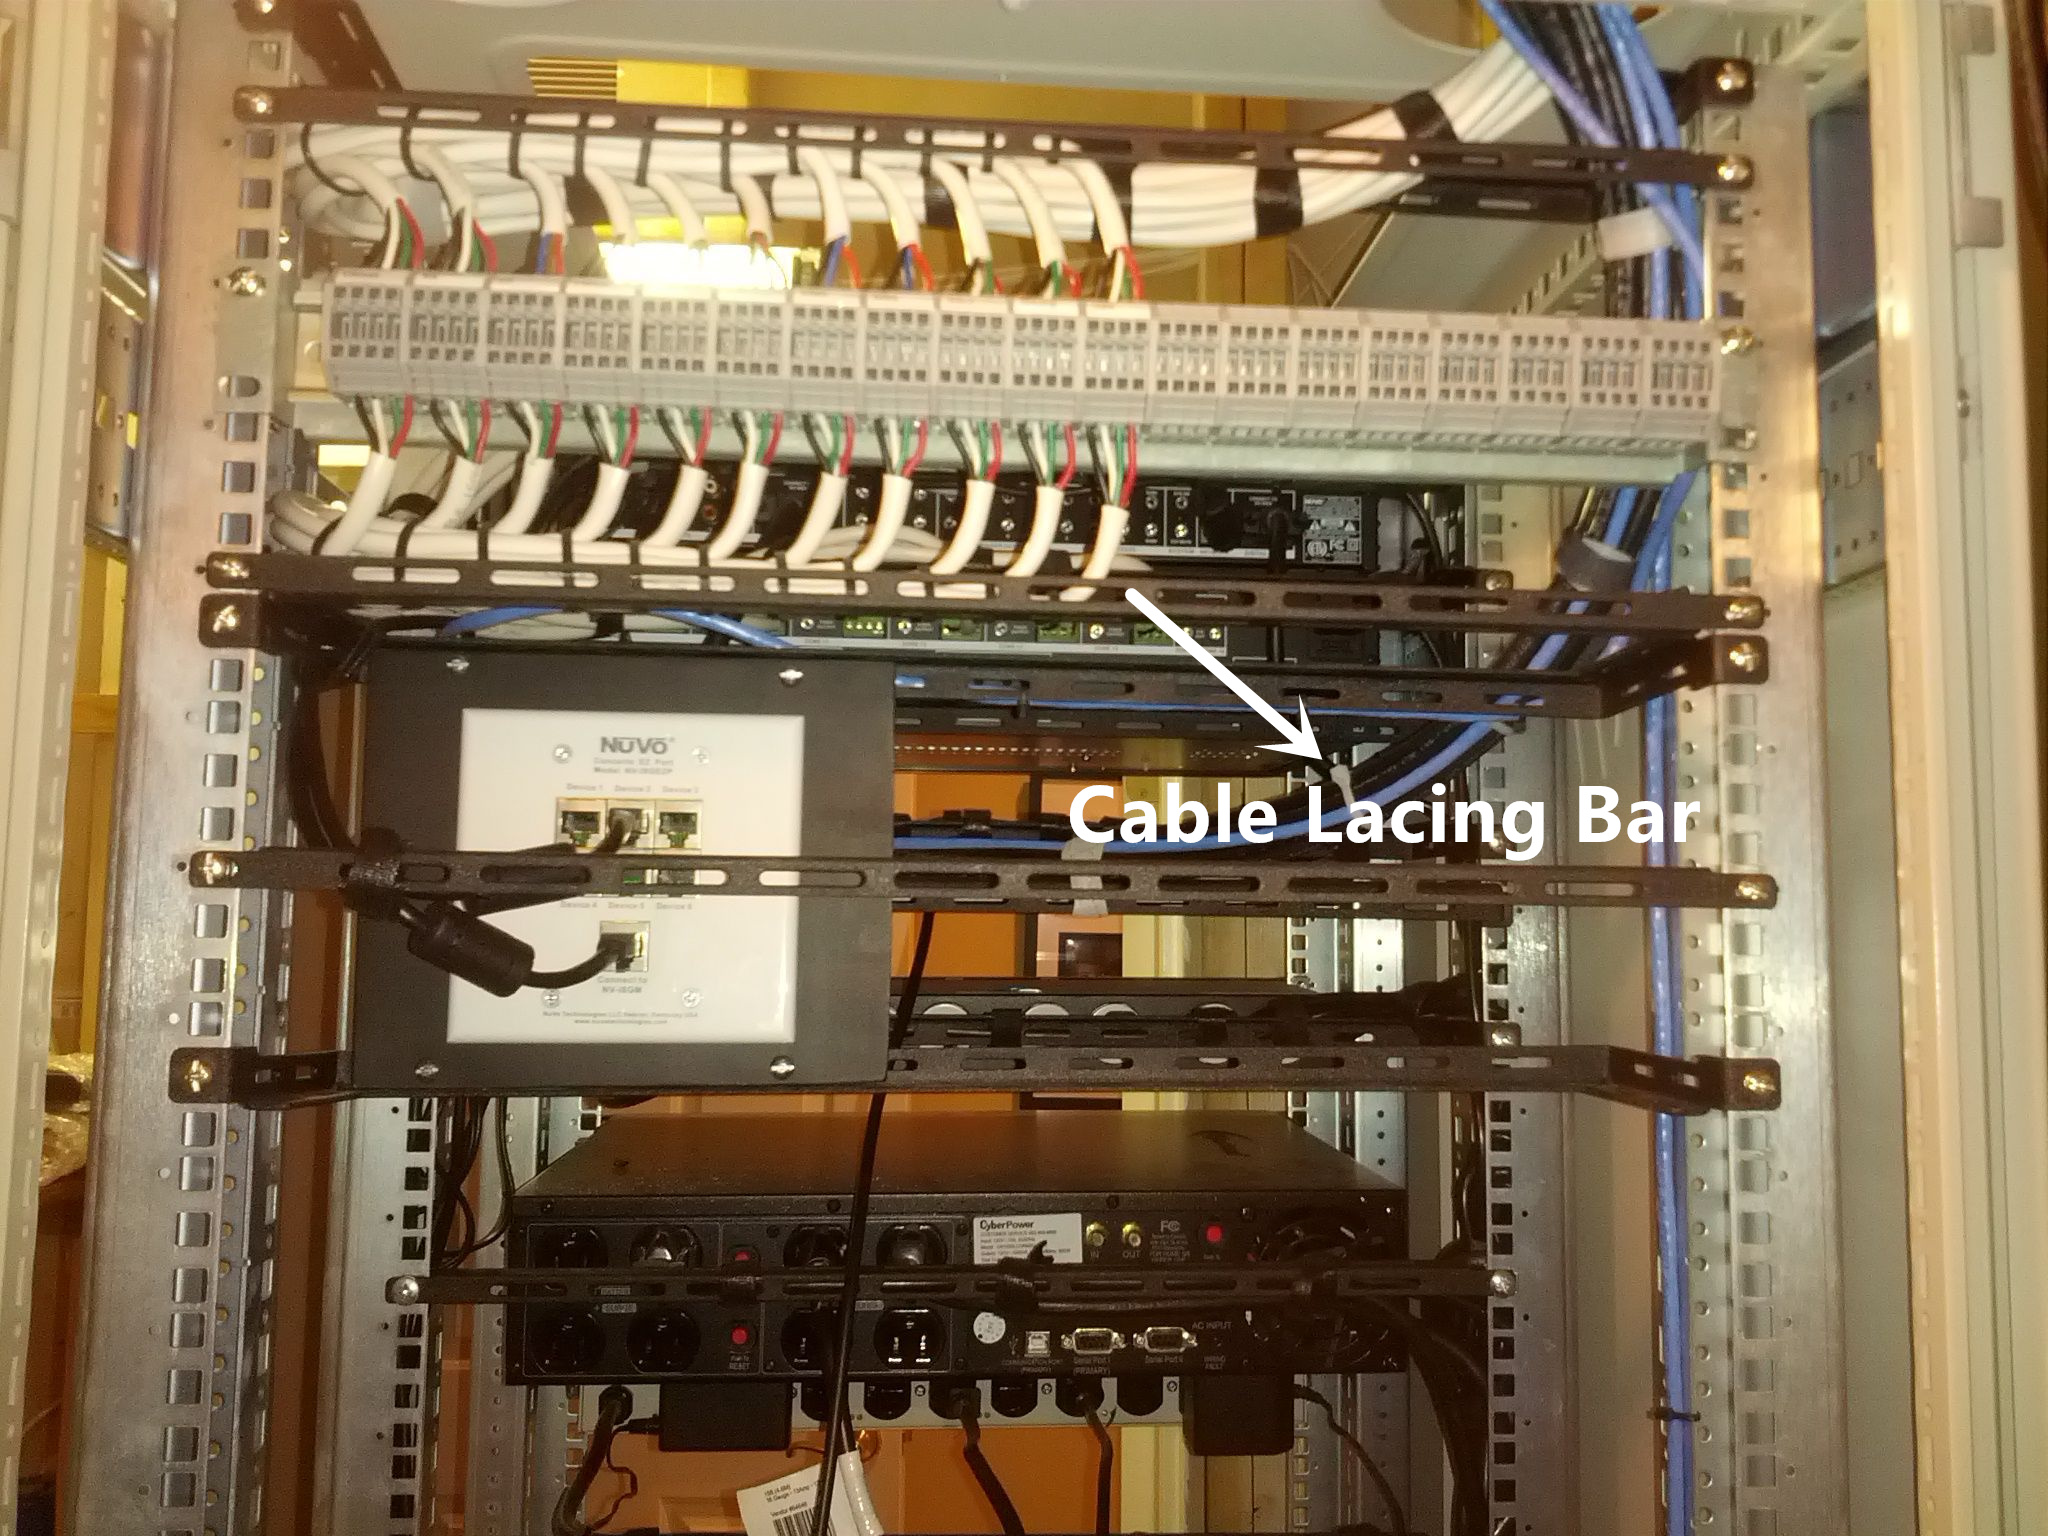 Cable Management Archives Fiber Cabling Solution Space Saving Design Simplifies In Wall Wiring And Keeps Messy Cables Lacing Bars